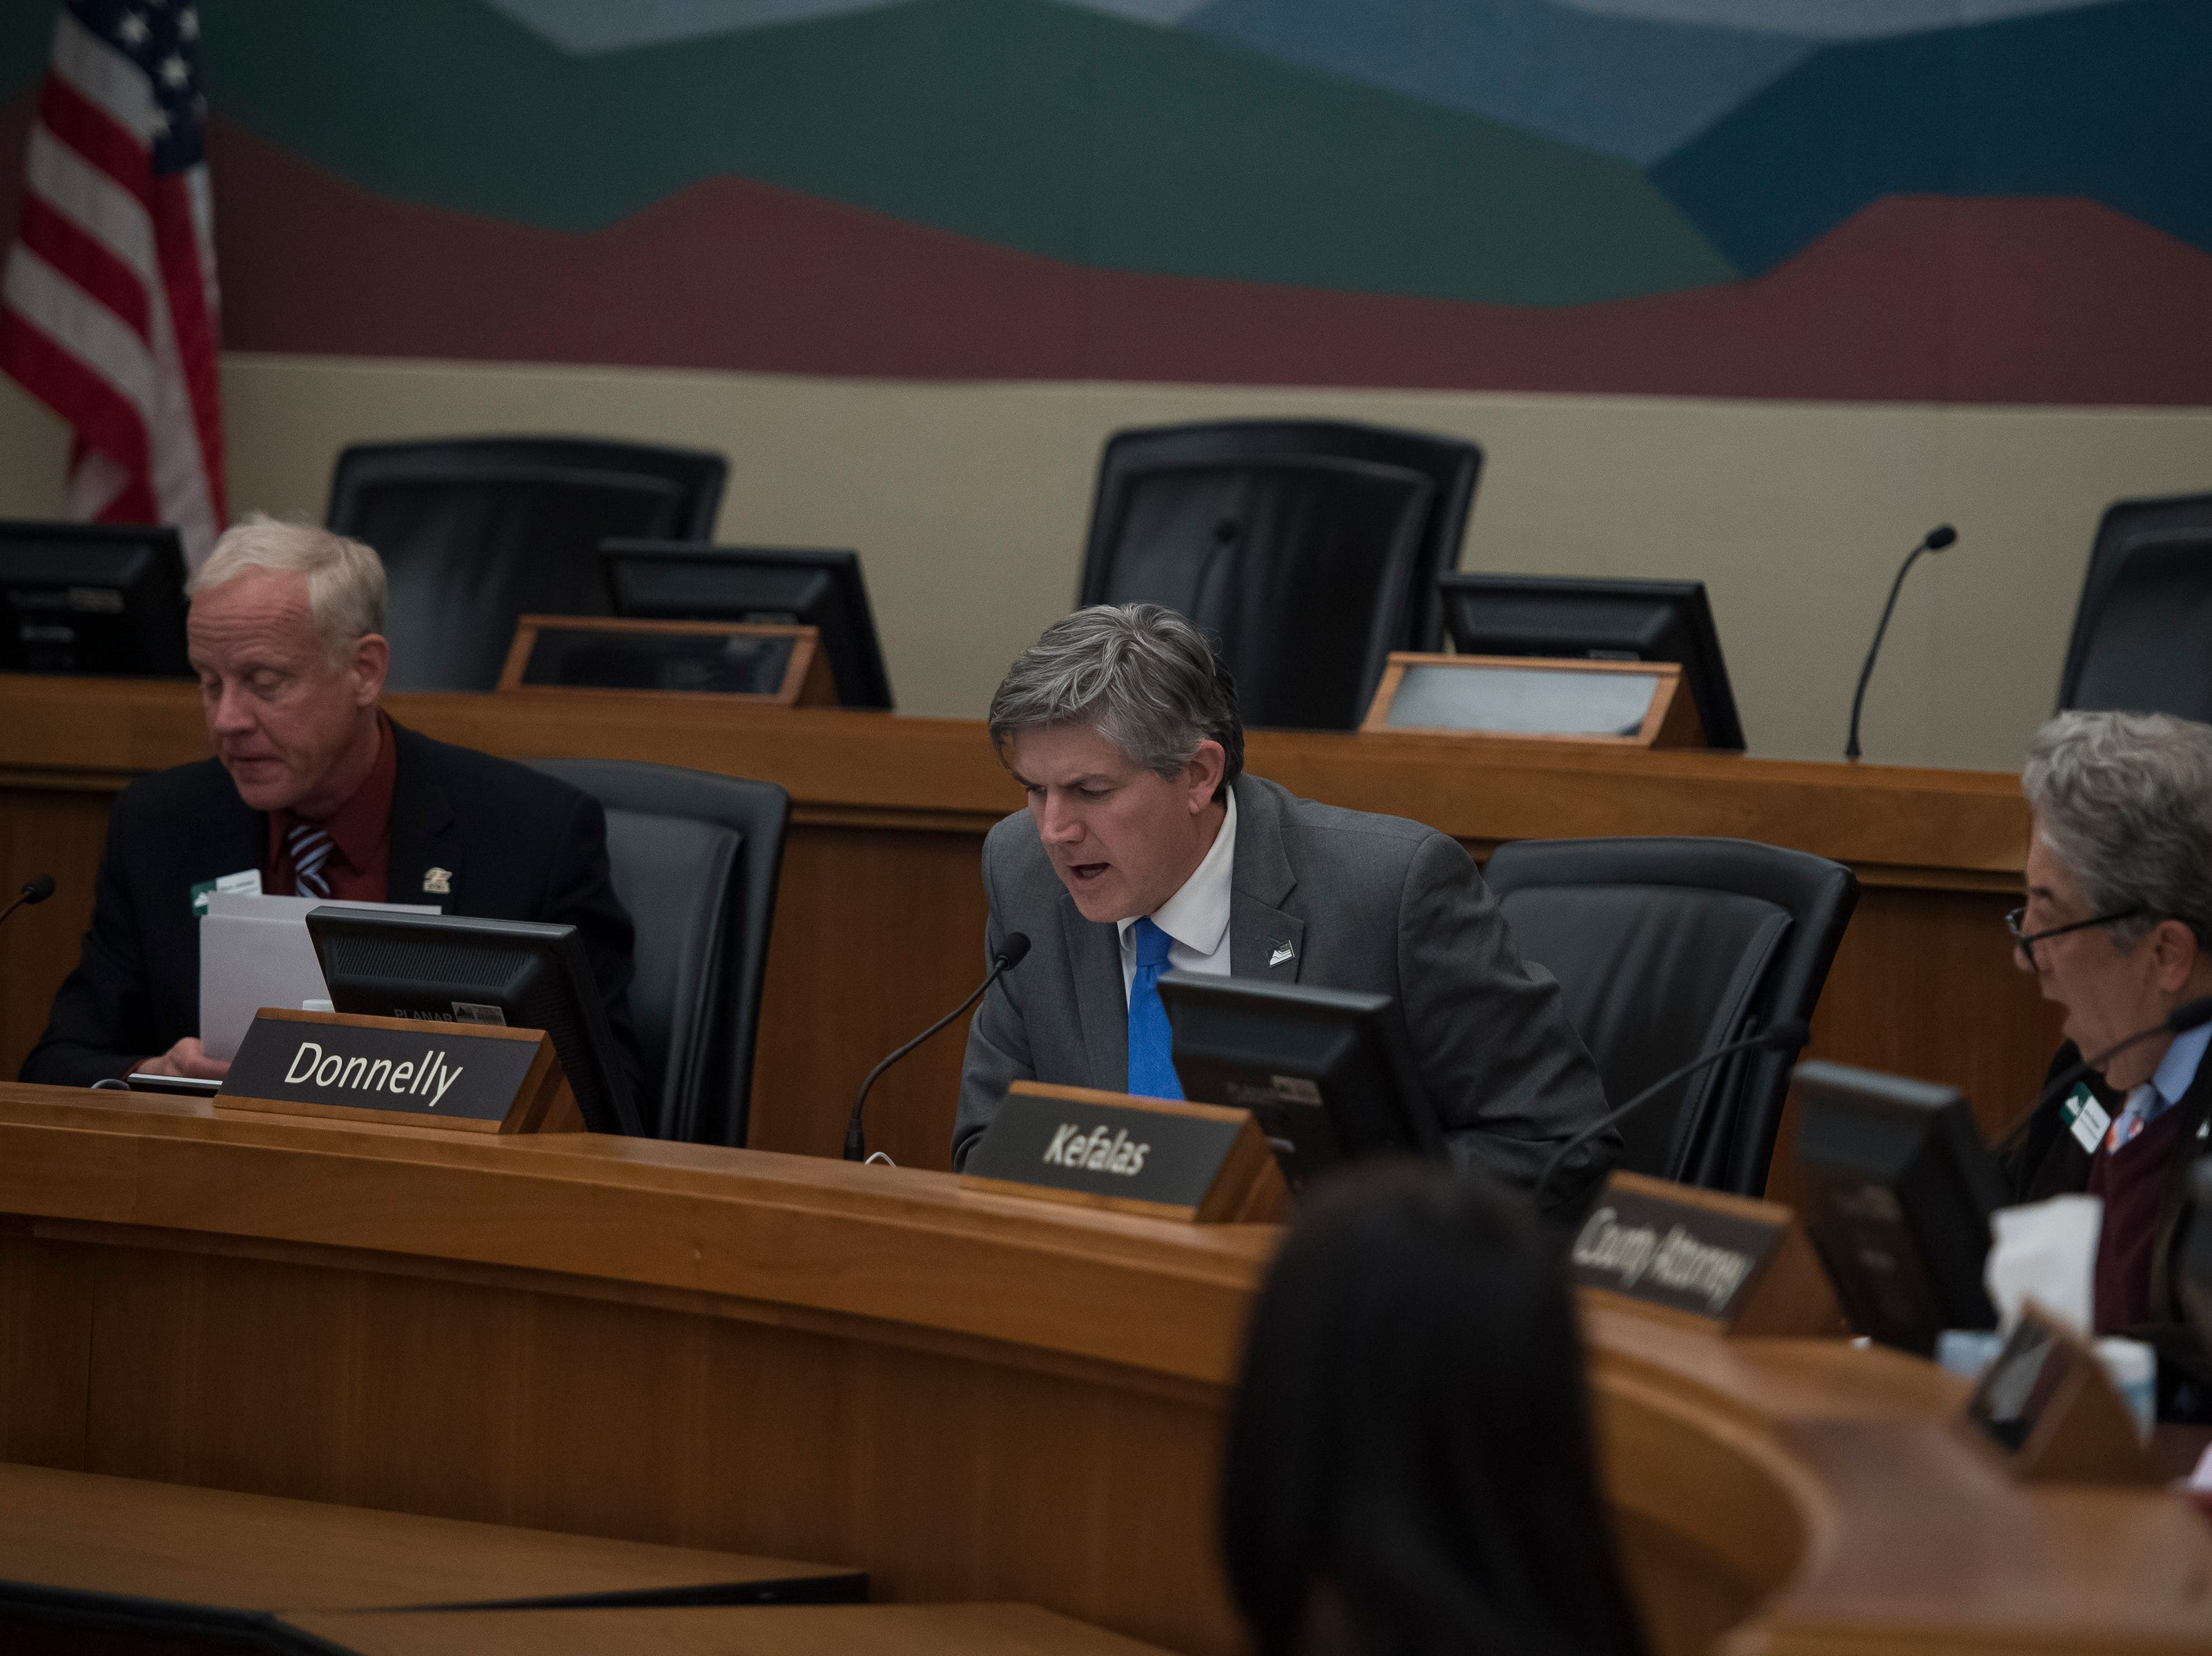 Larimer County Commissioners Tom Donnelly, center, and John Kefalas, right, second a proposal to by District two commissioner Steve Johnson, left, to not allow the current construction proposition of the Thornton pipeline on Monday, Feb. 11, 2019, in Fort Collins, Colo.